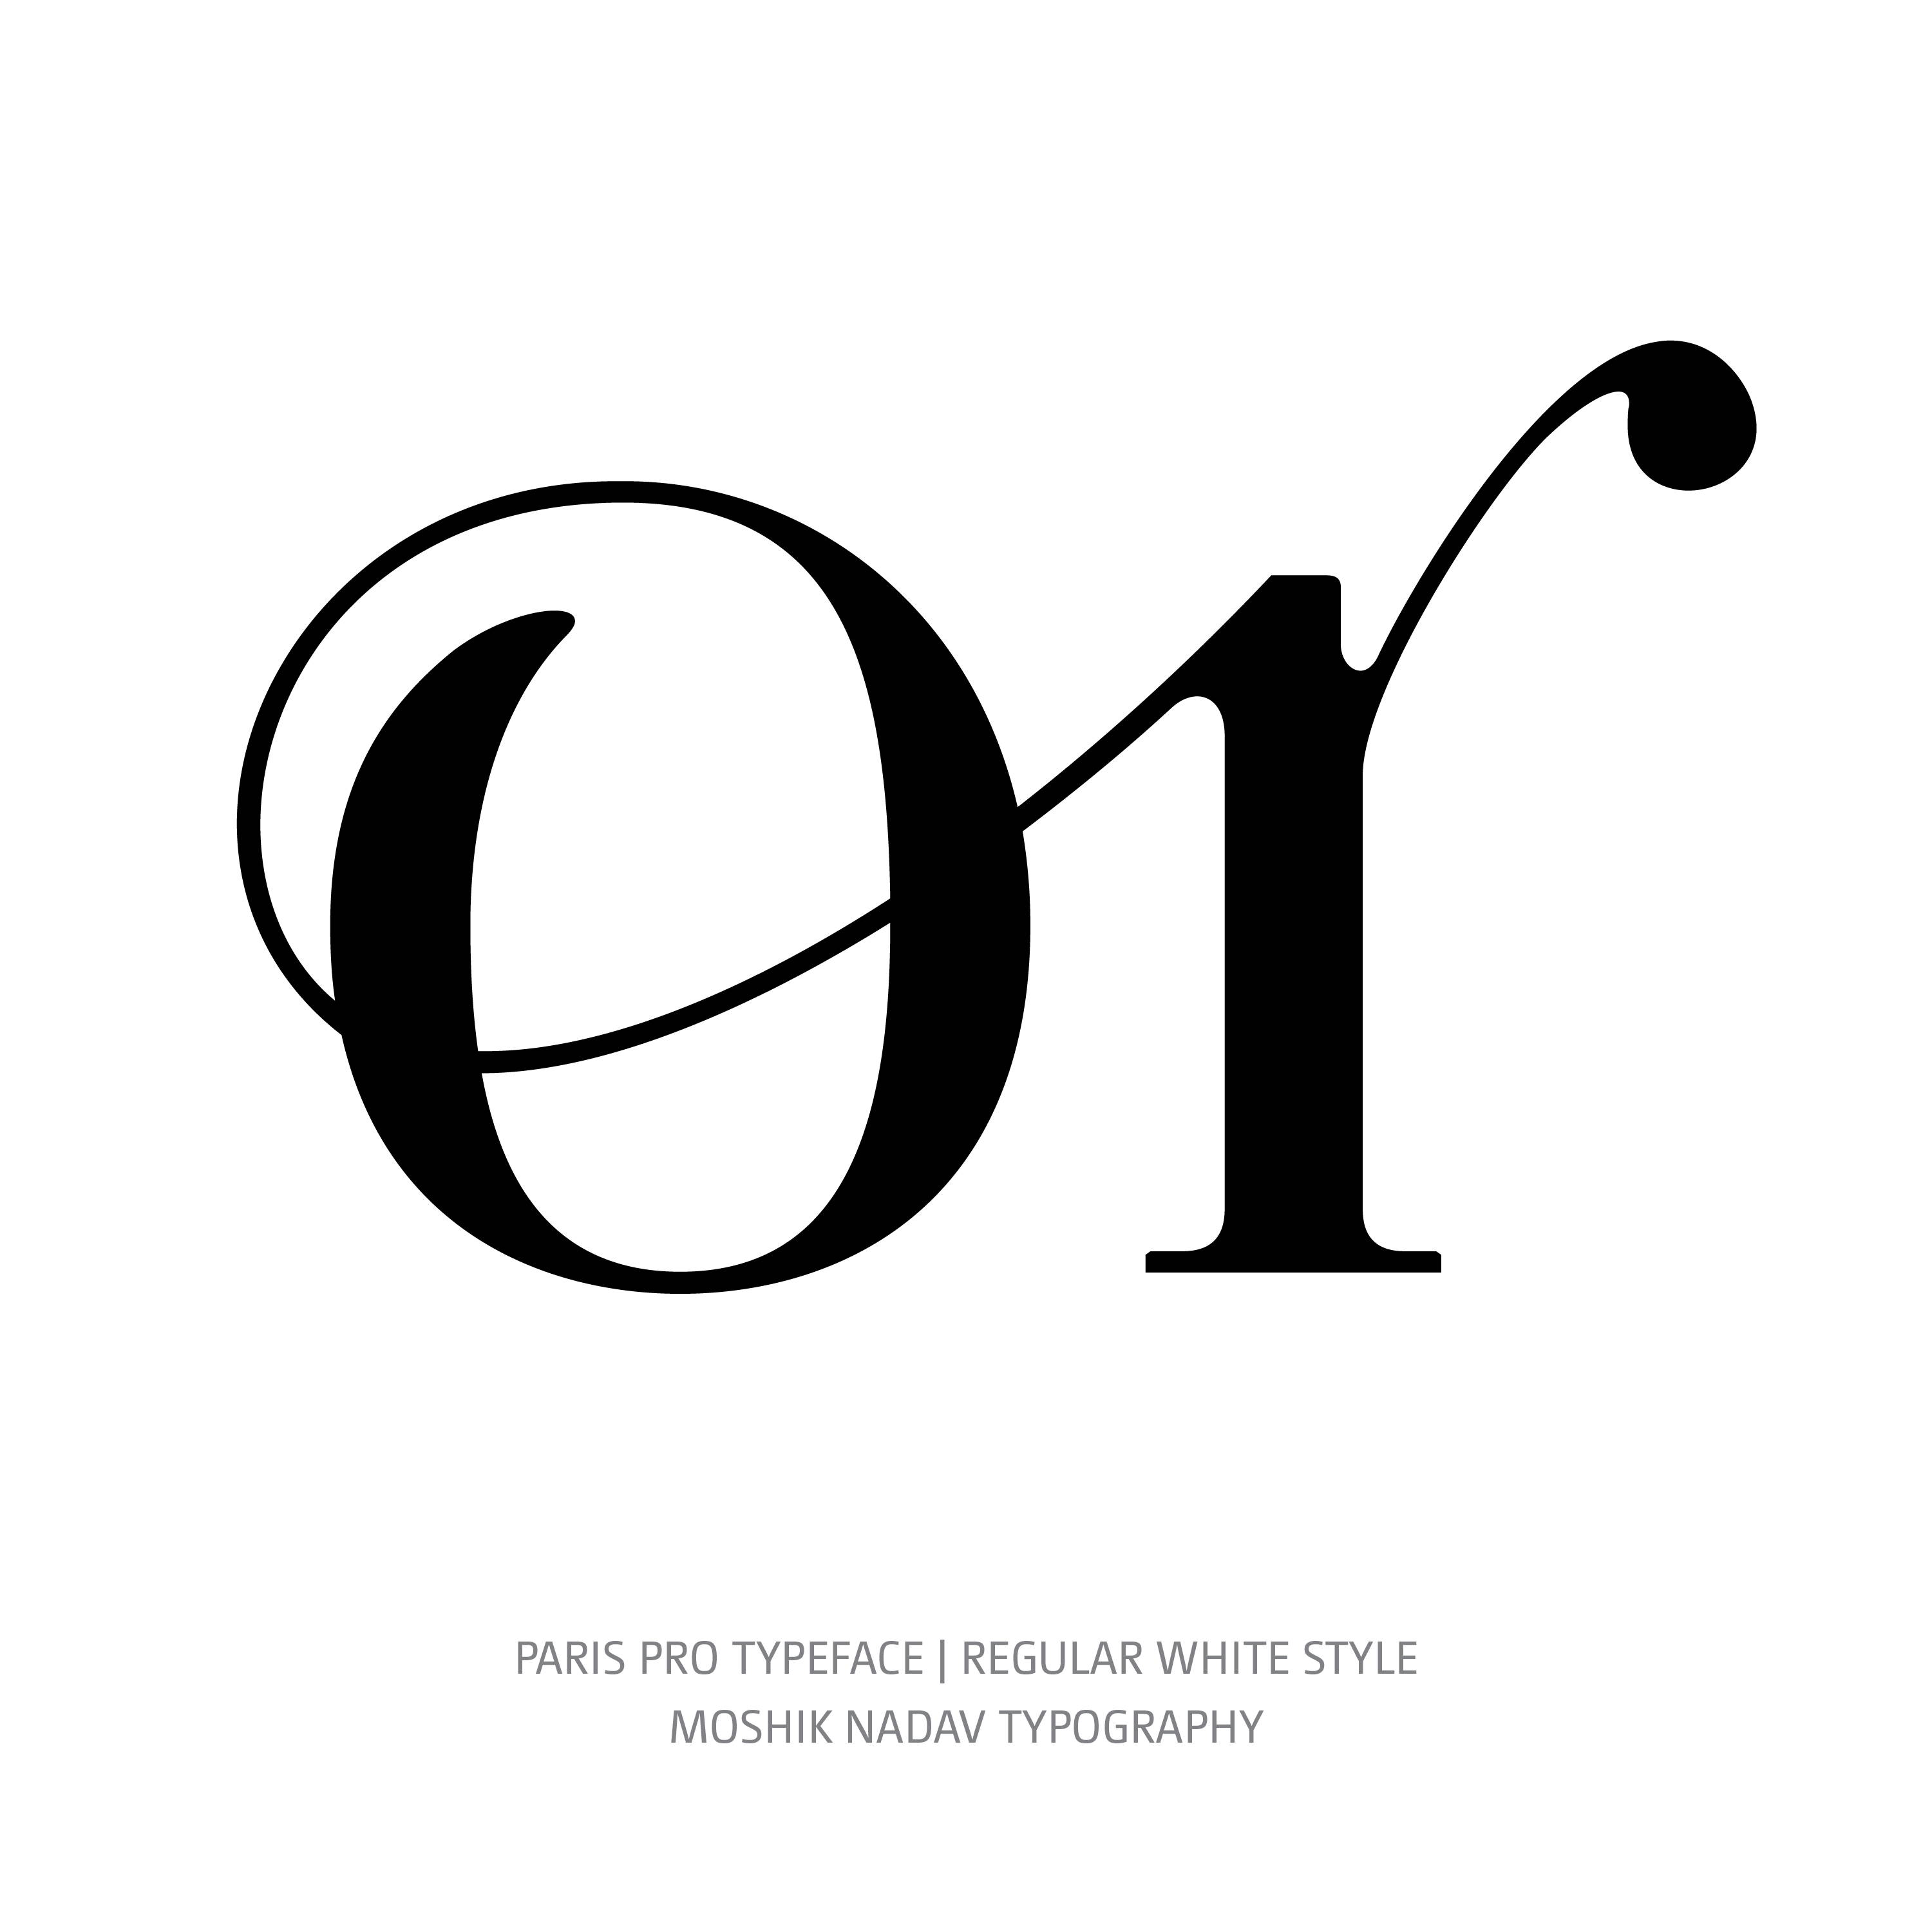 Paris Pro Typeface Regular White or ligature